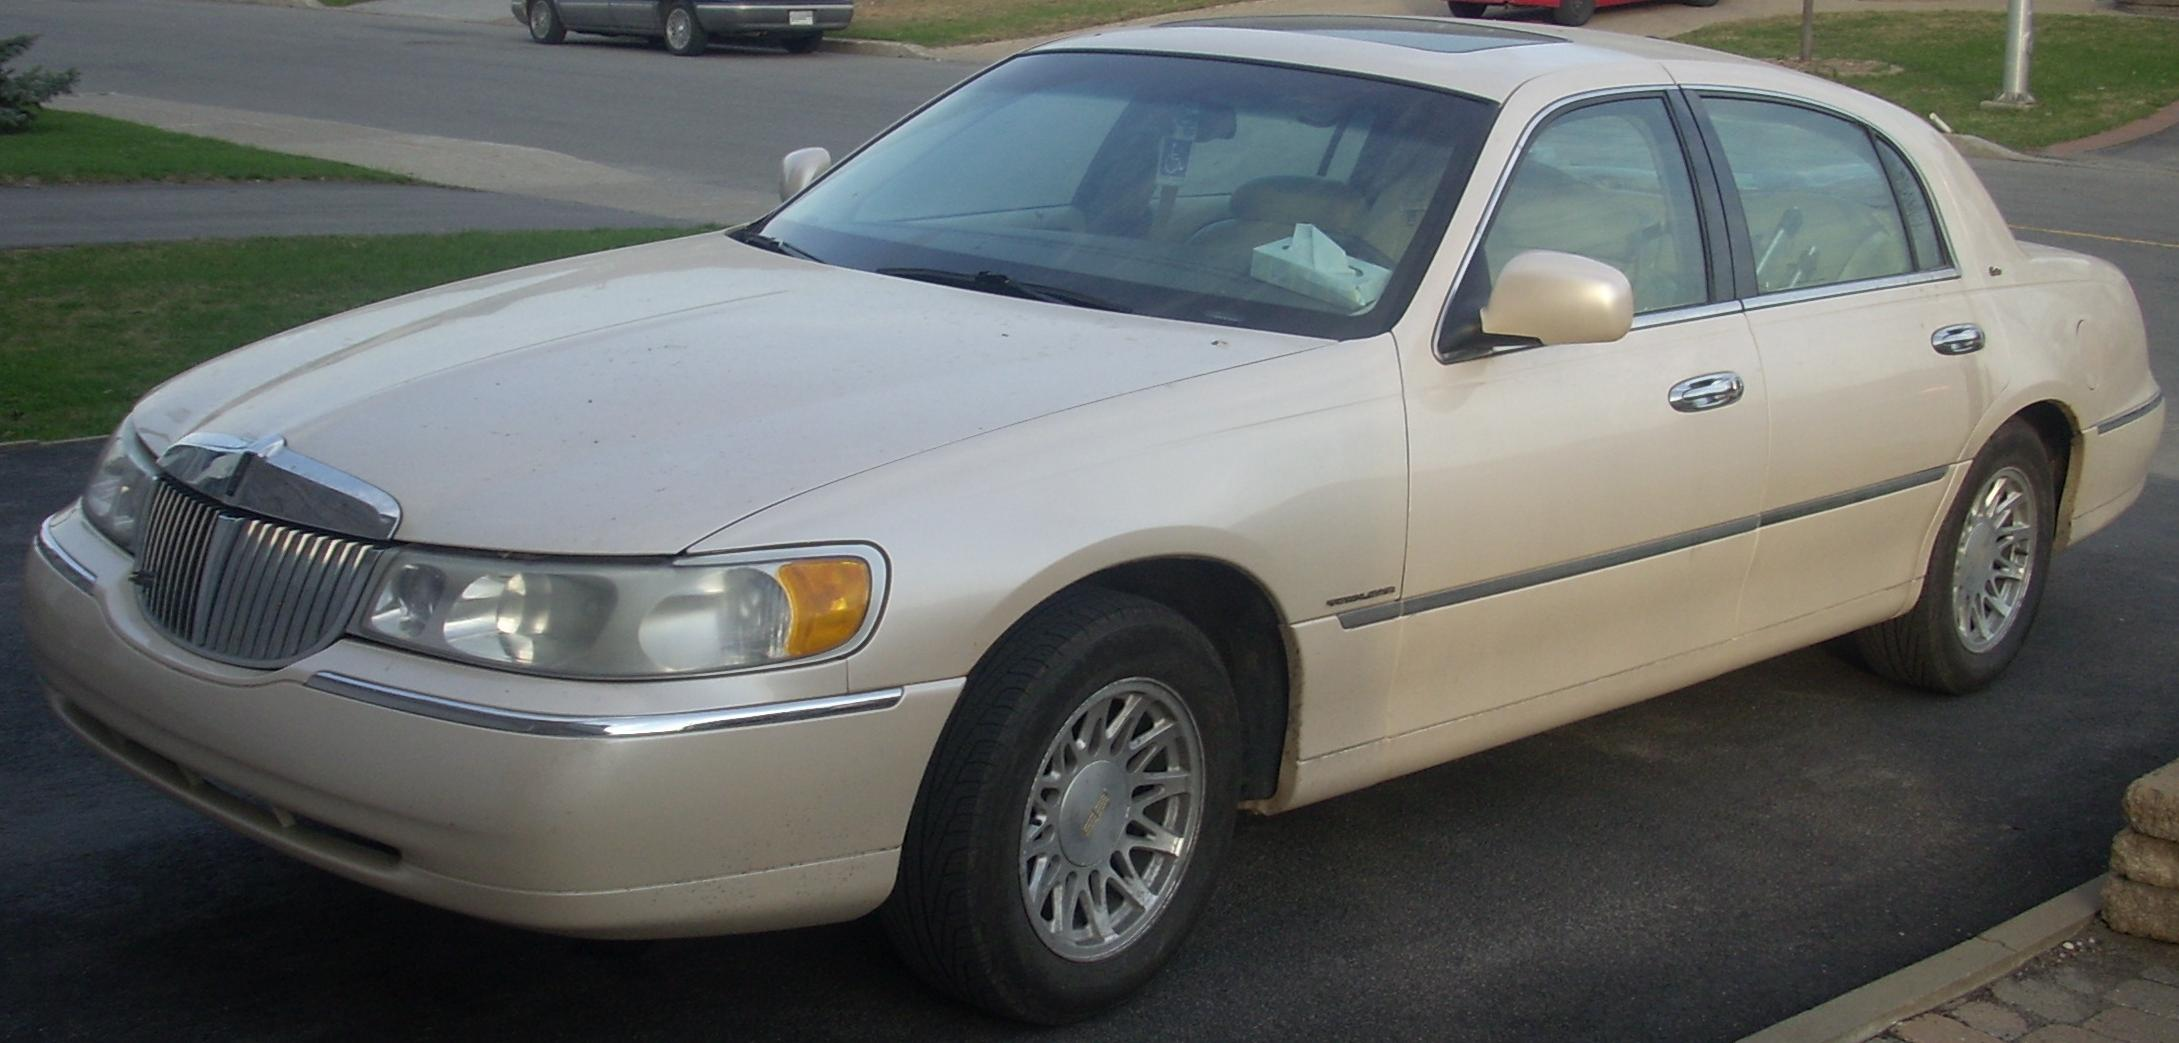 file98 02 lincoln town car cartier